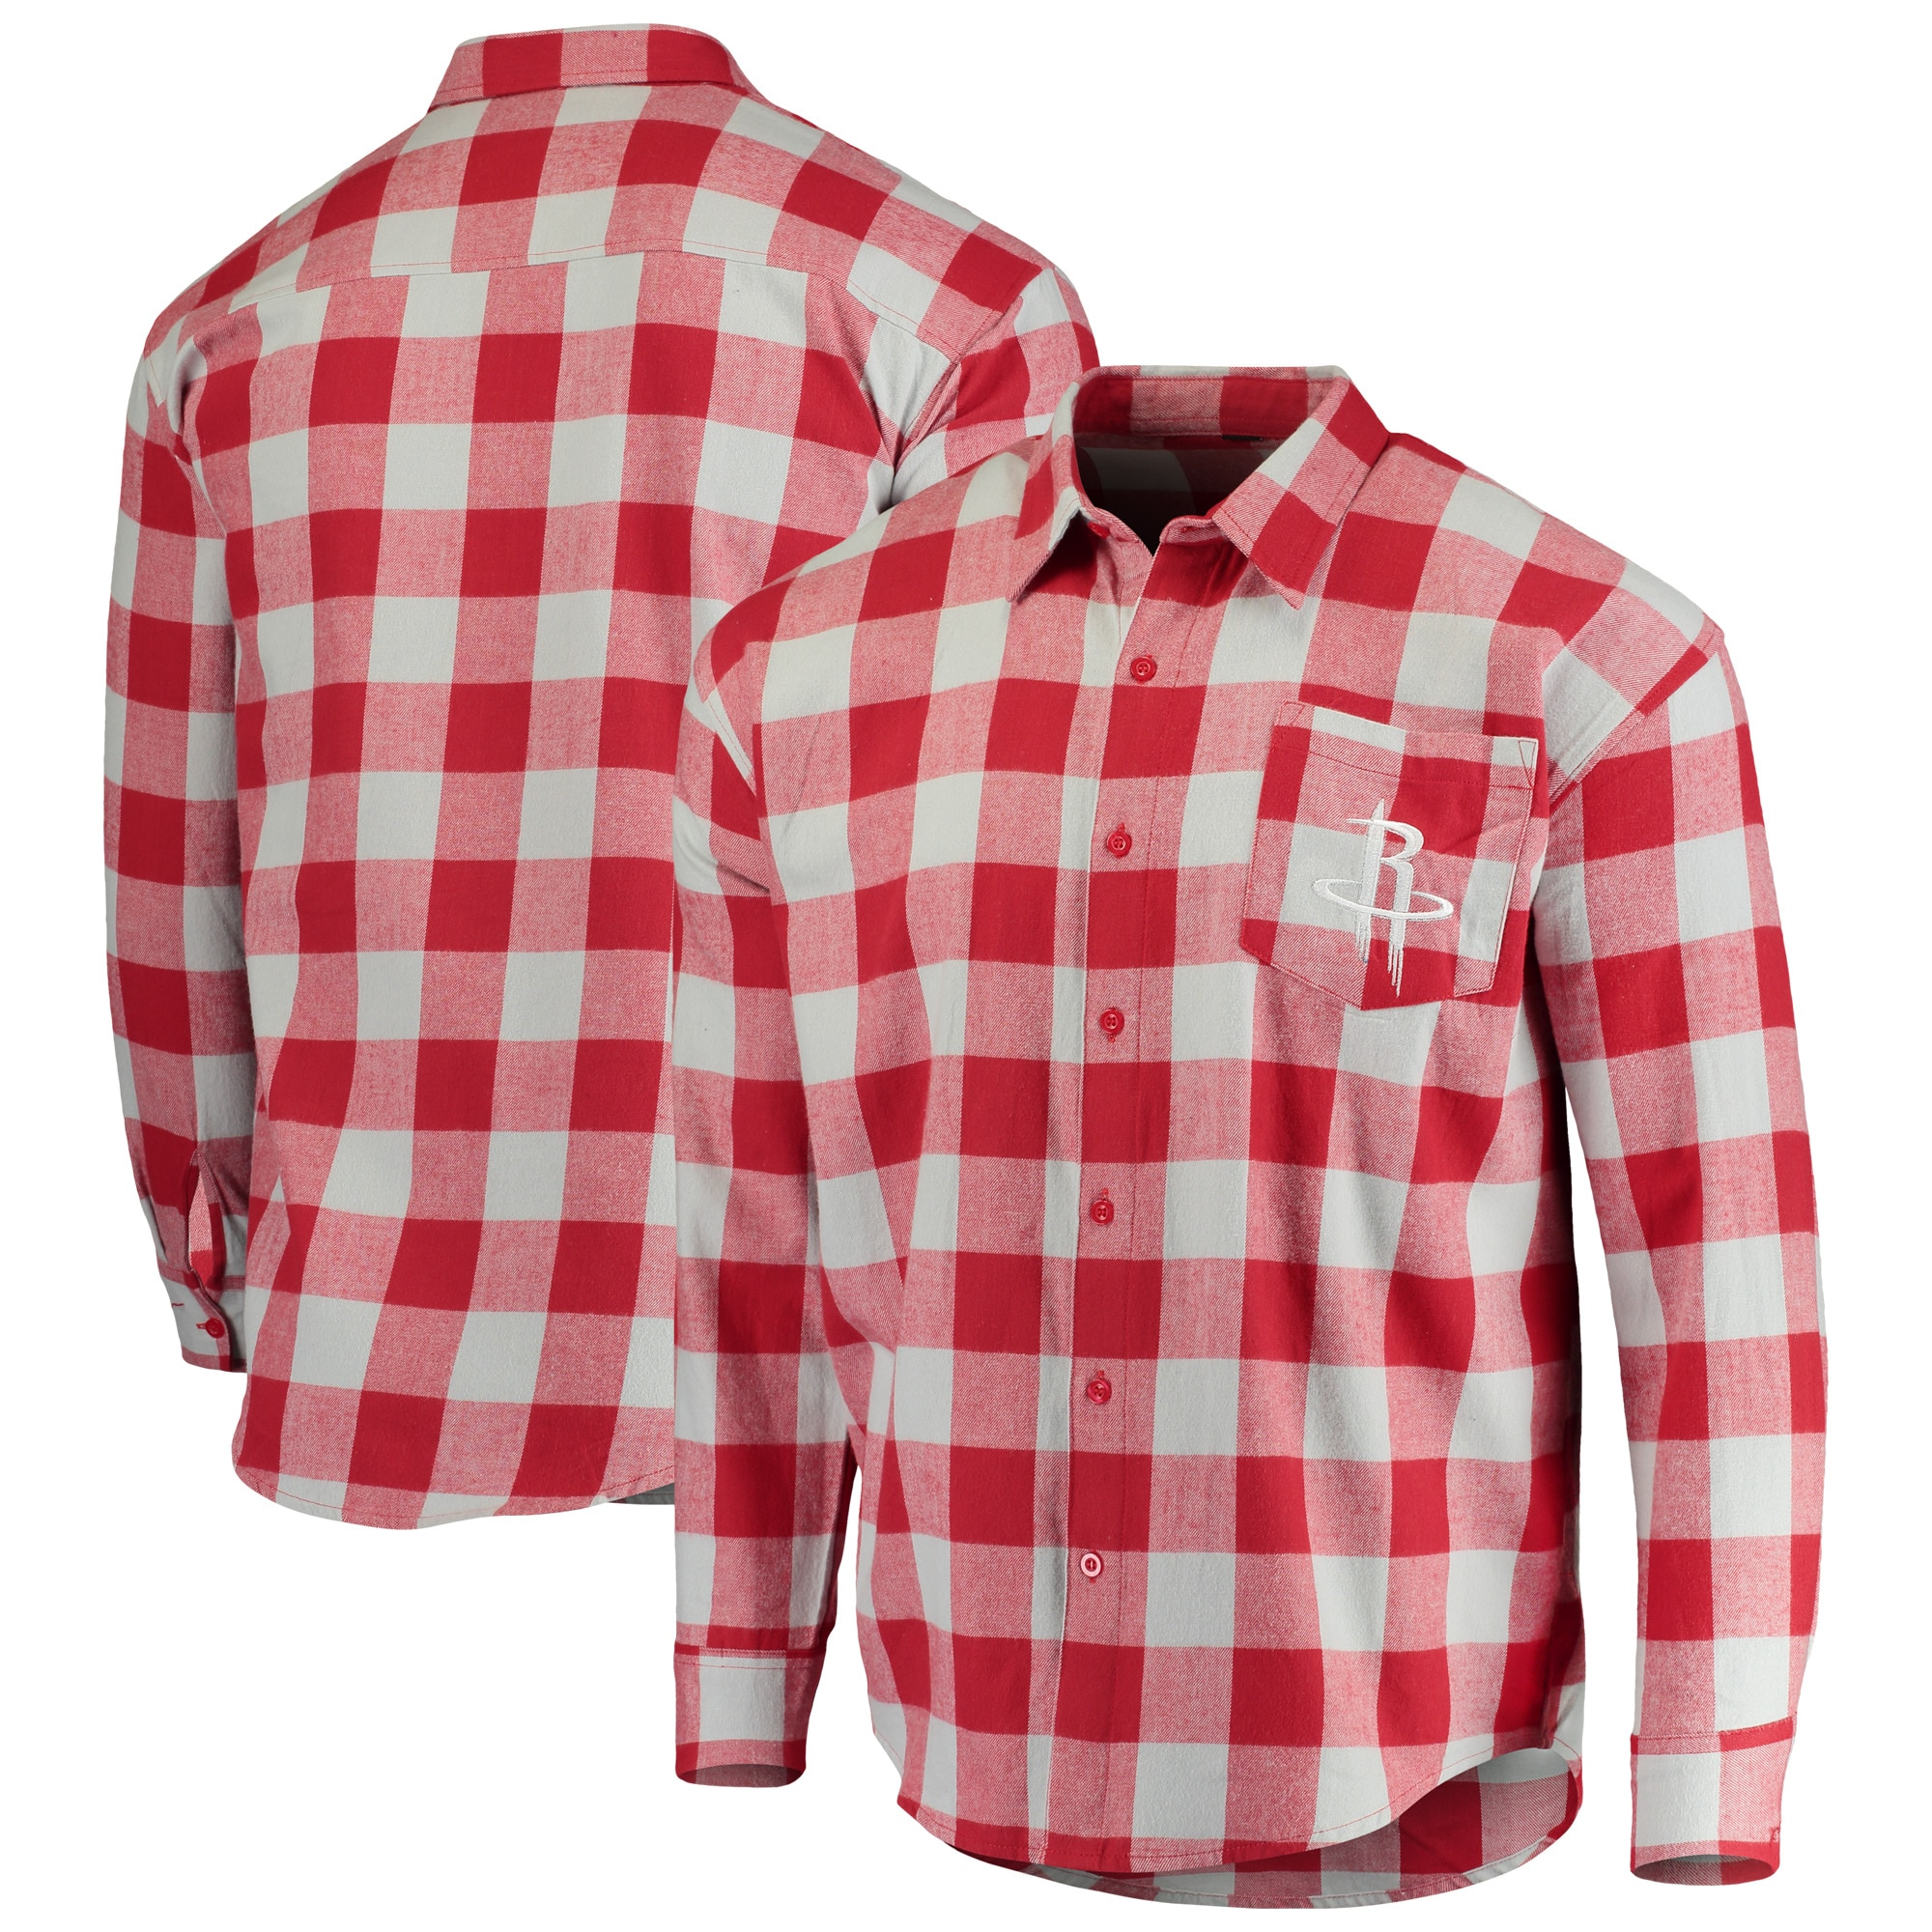 Houston Rockets Big Checker Plaid Flannel Long Sleeve Button-Up Shirt - Red